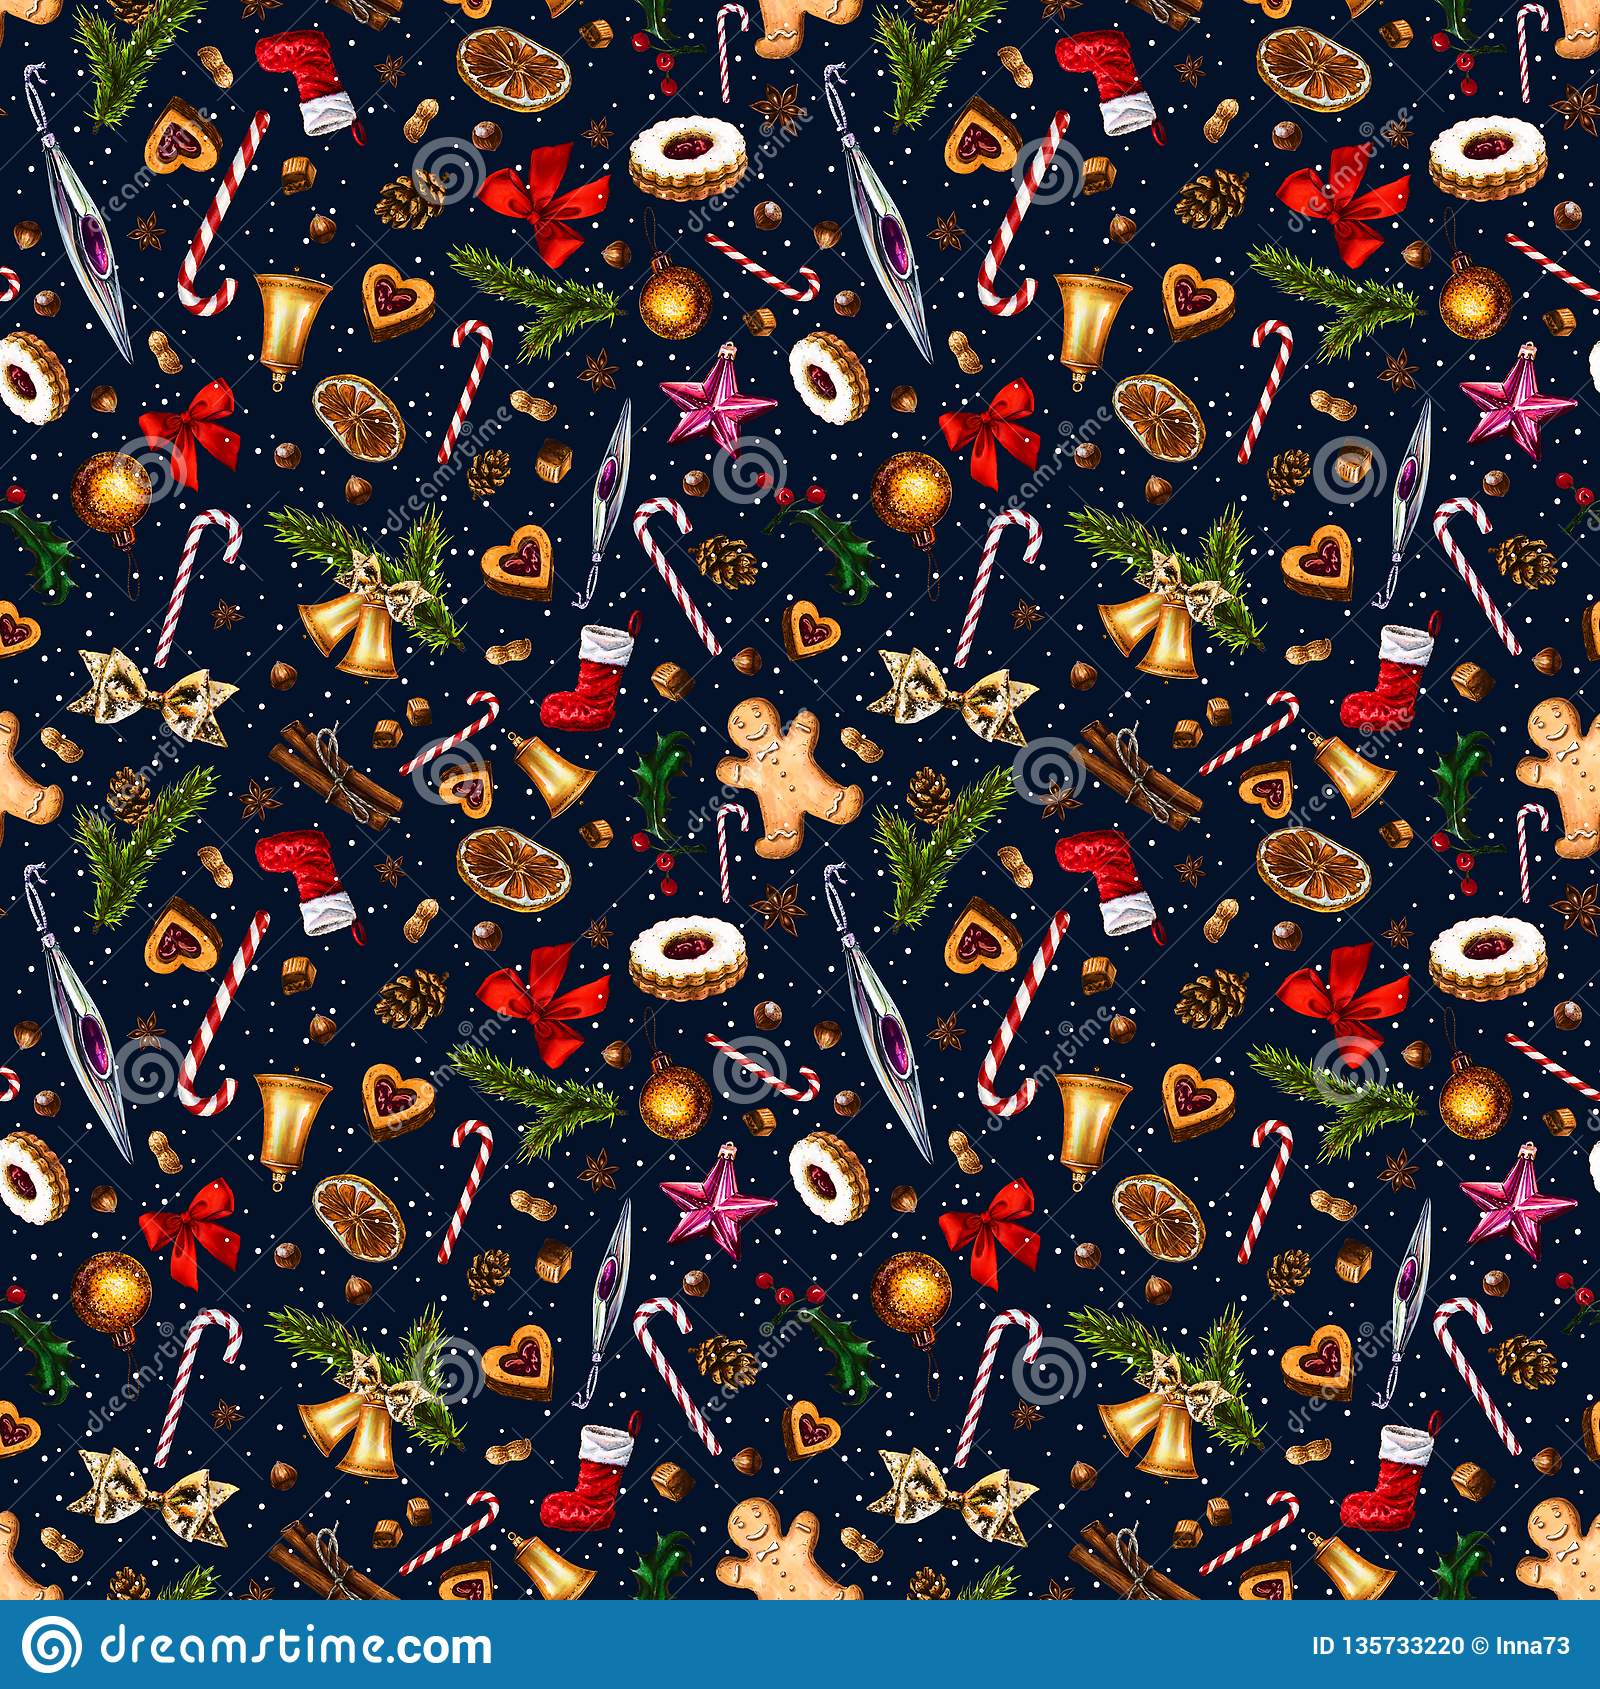 Festive seamless pattern with winter holiday attributes on dark blue background with white snow dots.